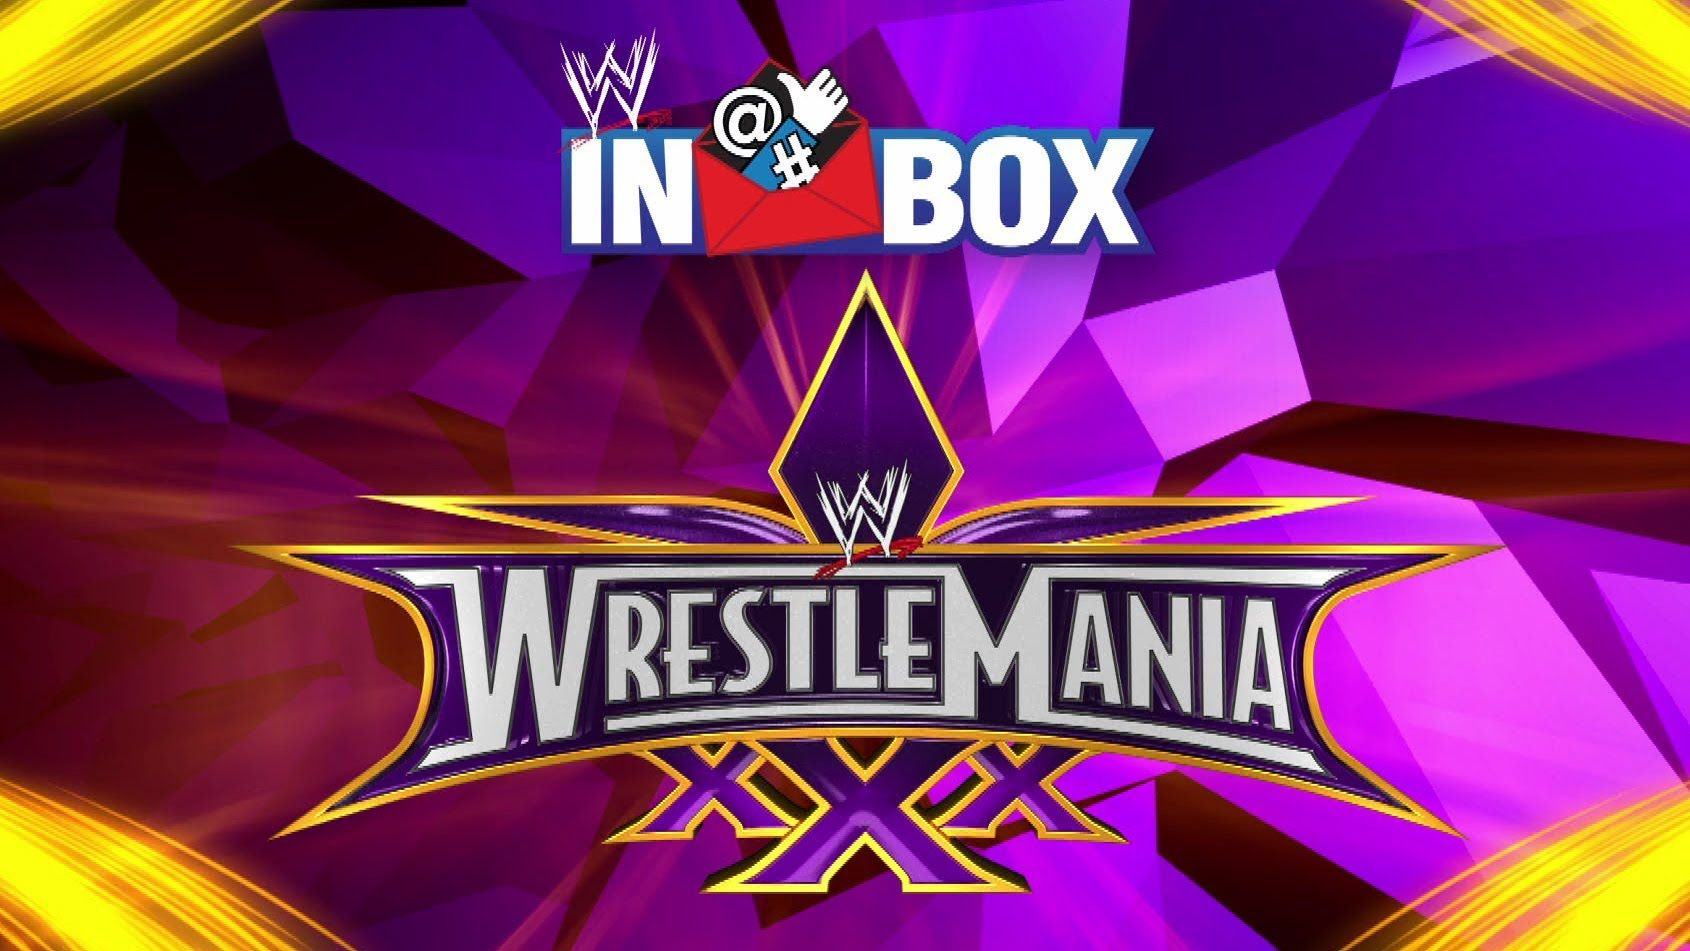 Superstars share their predictions for WrestleMania 30 - WWE Inbox 114 (...